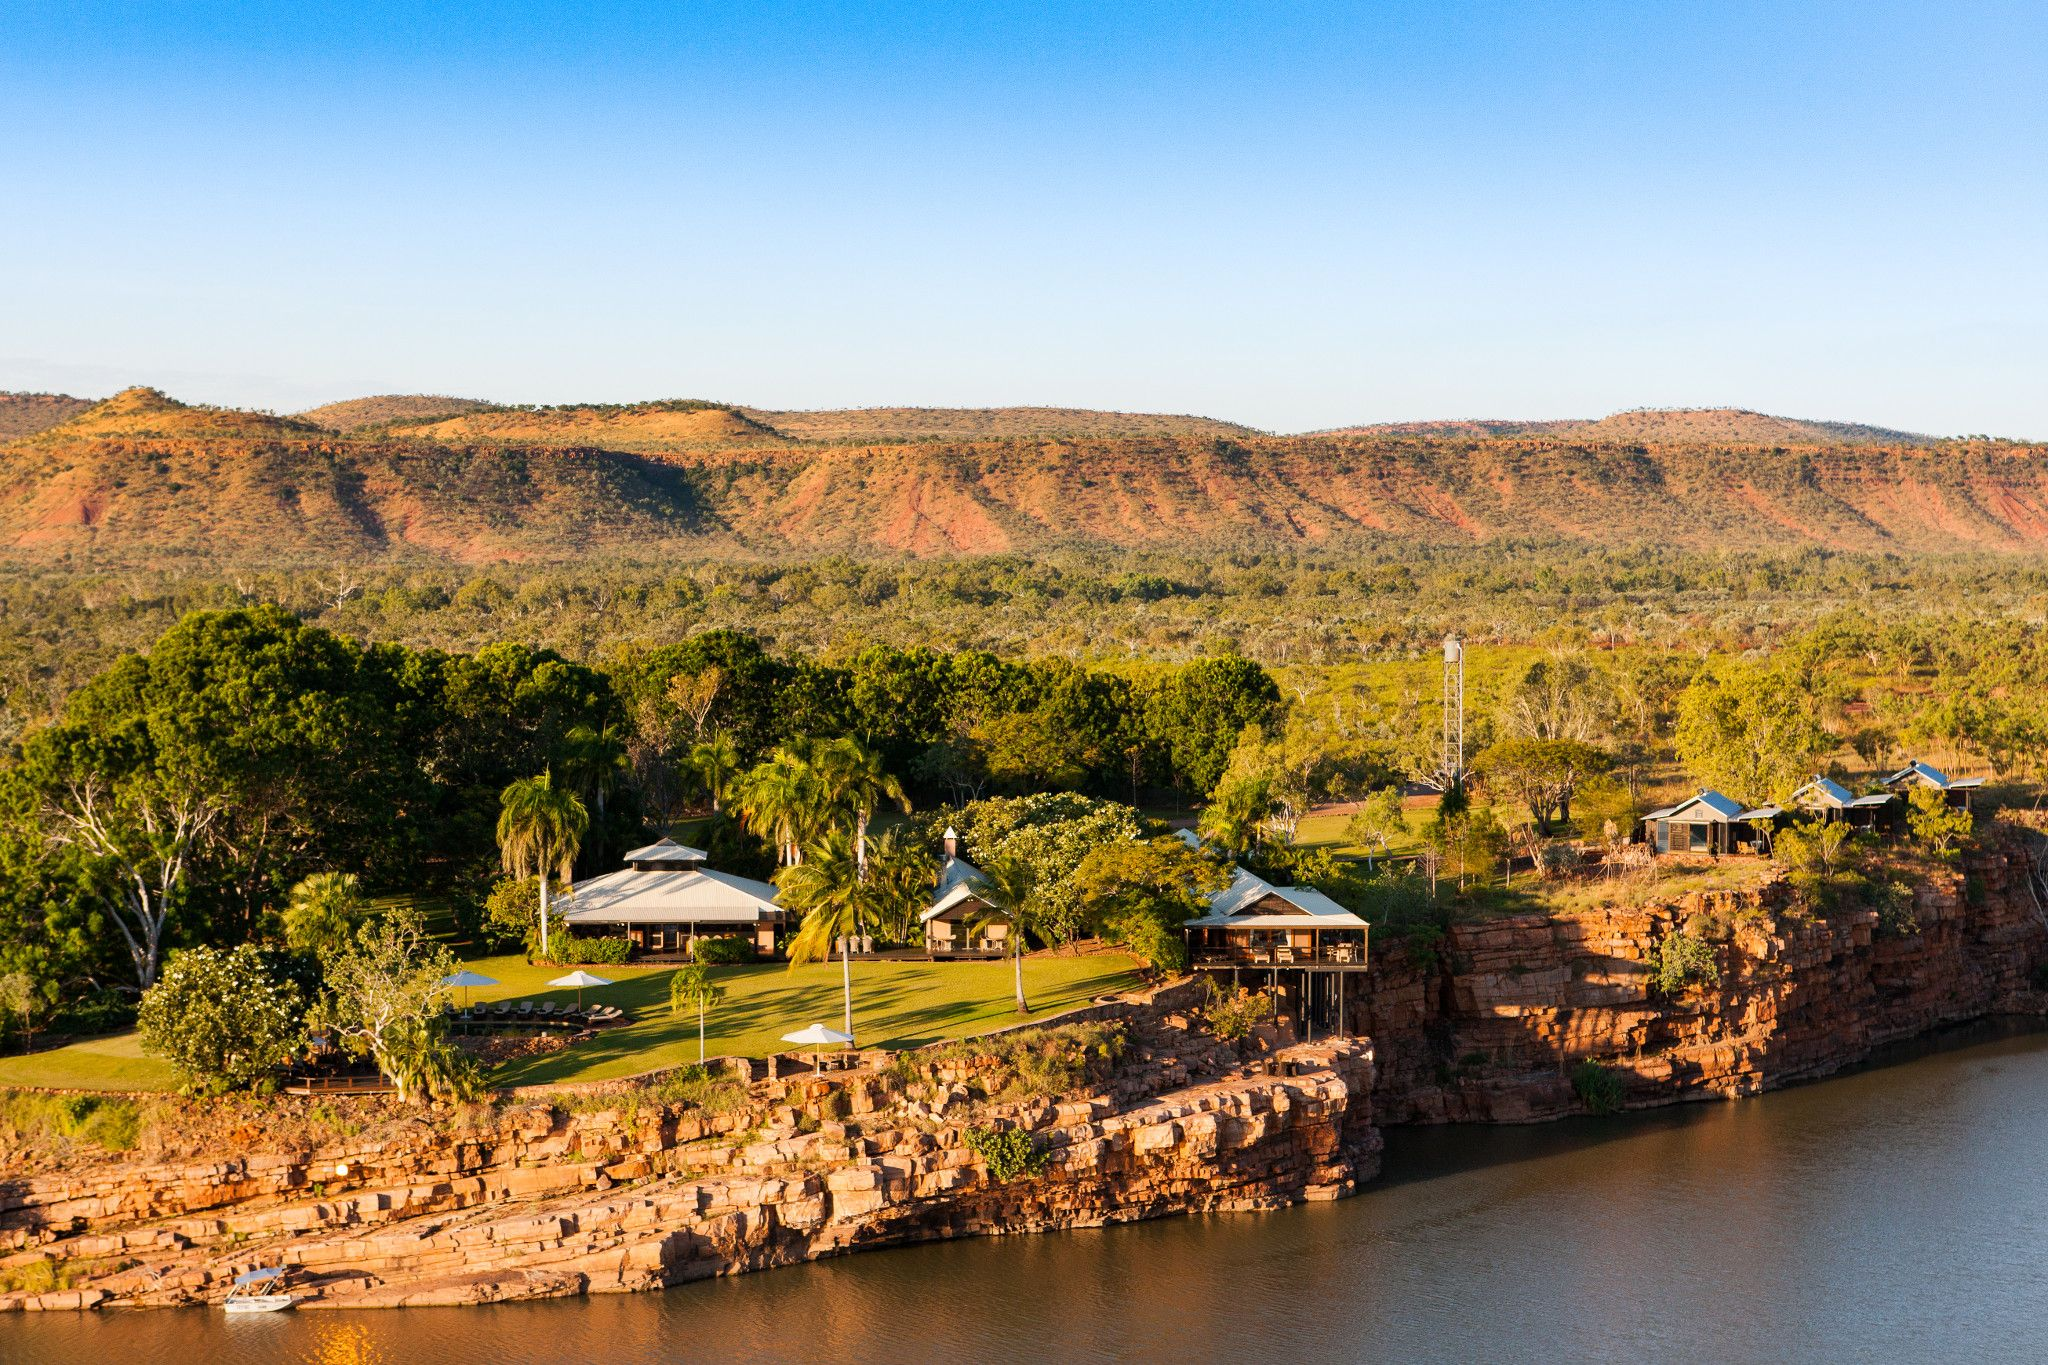 riverview cottages accommodation on hill alt el Questro homestead on the kimberley ride horse riding holiday by globetrotting